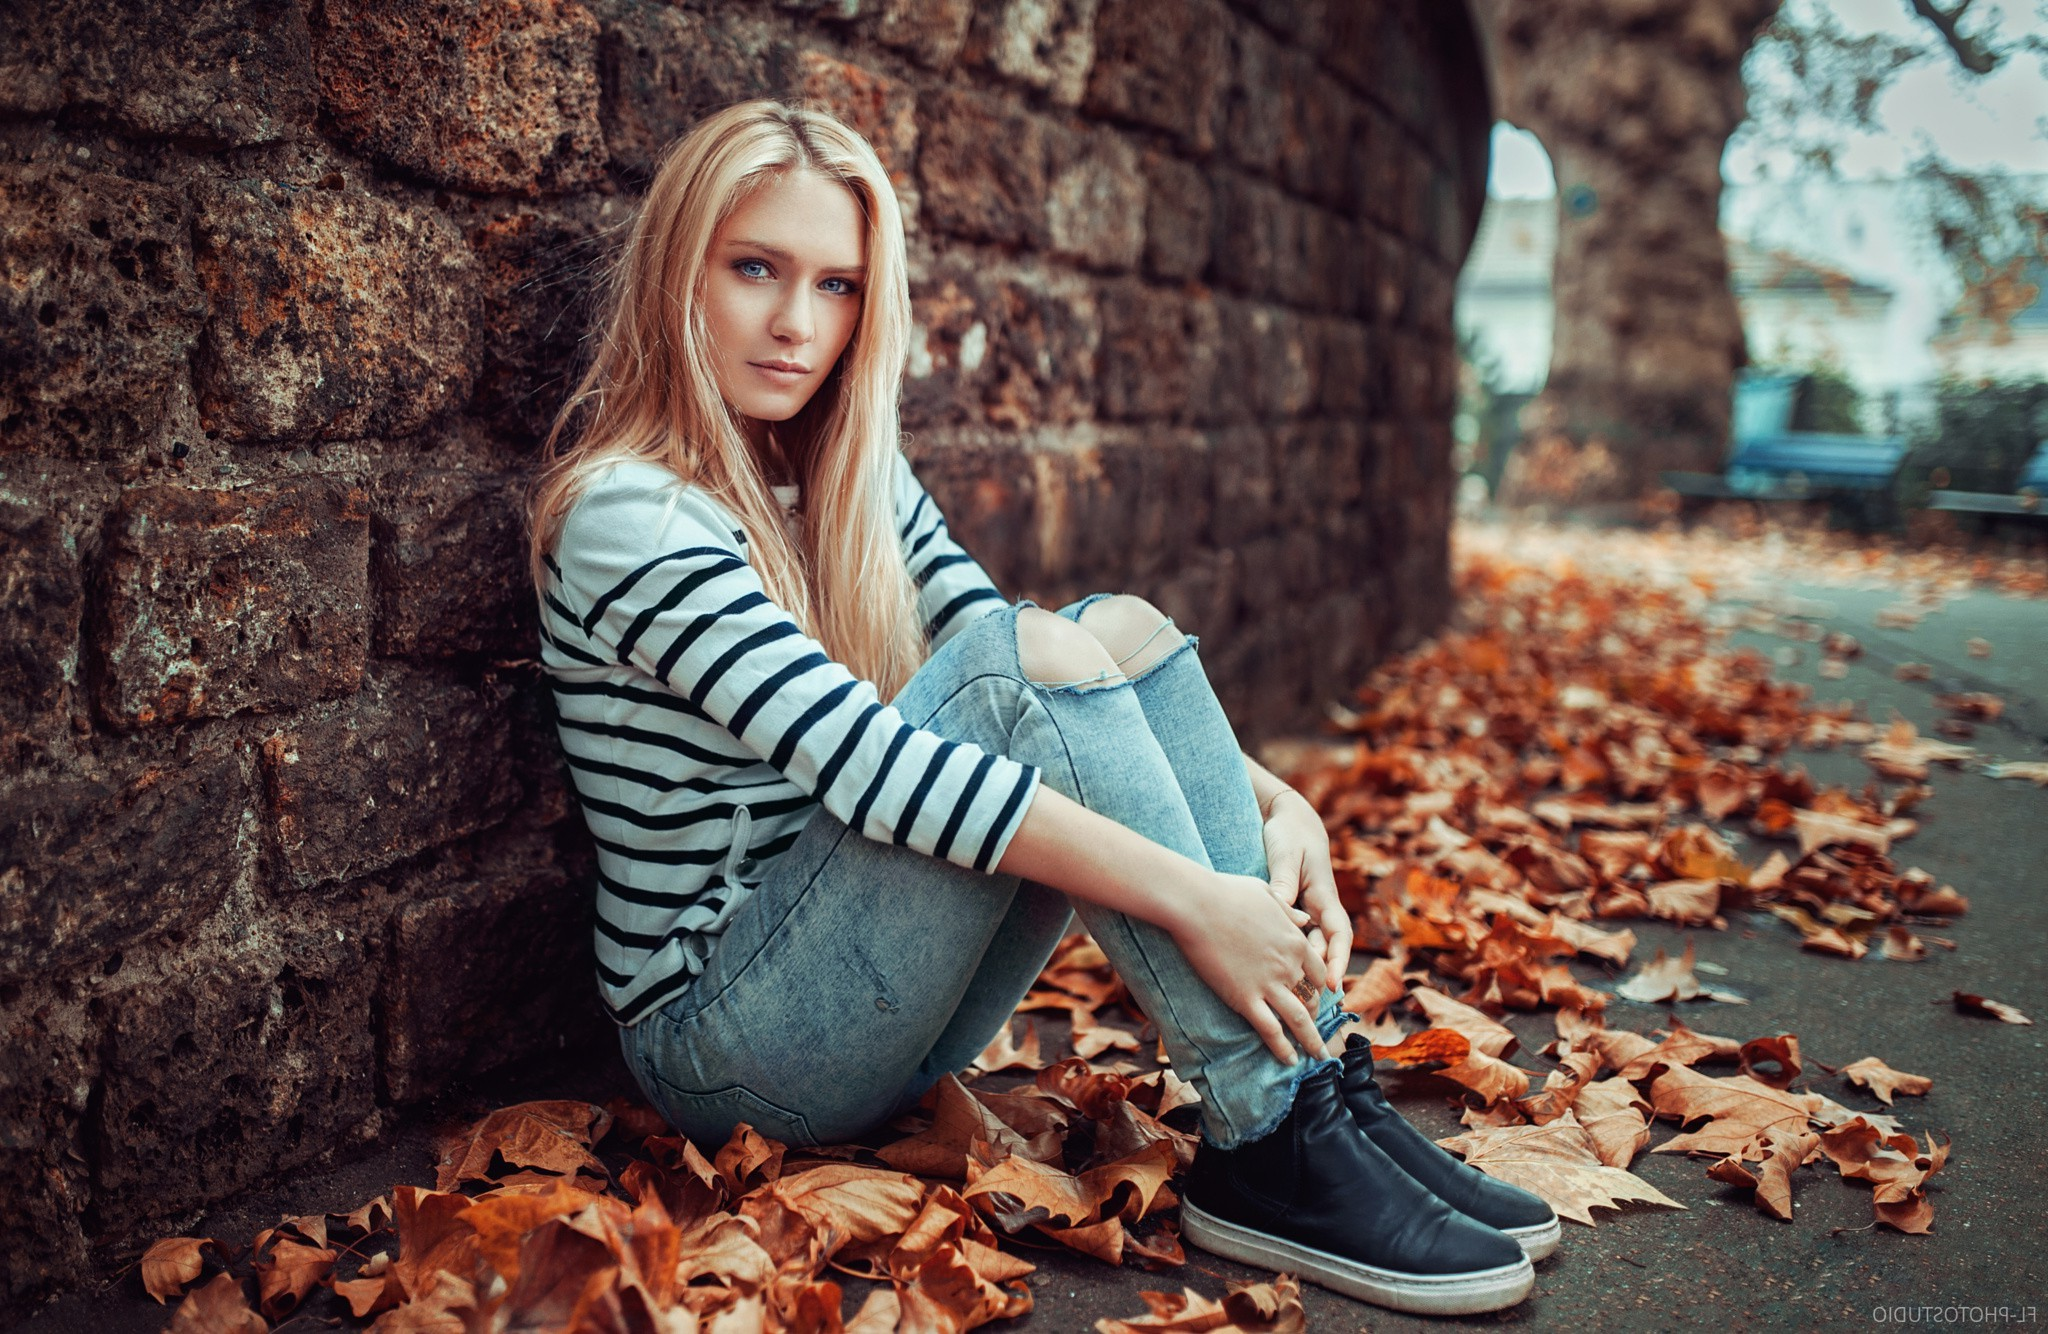 A Girl Sitting Alone Wallpapers Women Blonde Sitting Looking At Viewer Pants Jeans